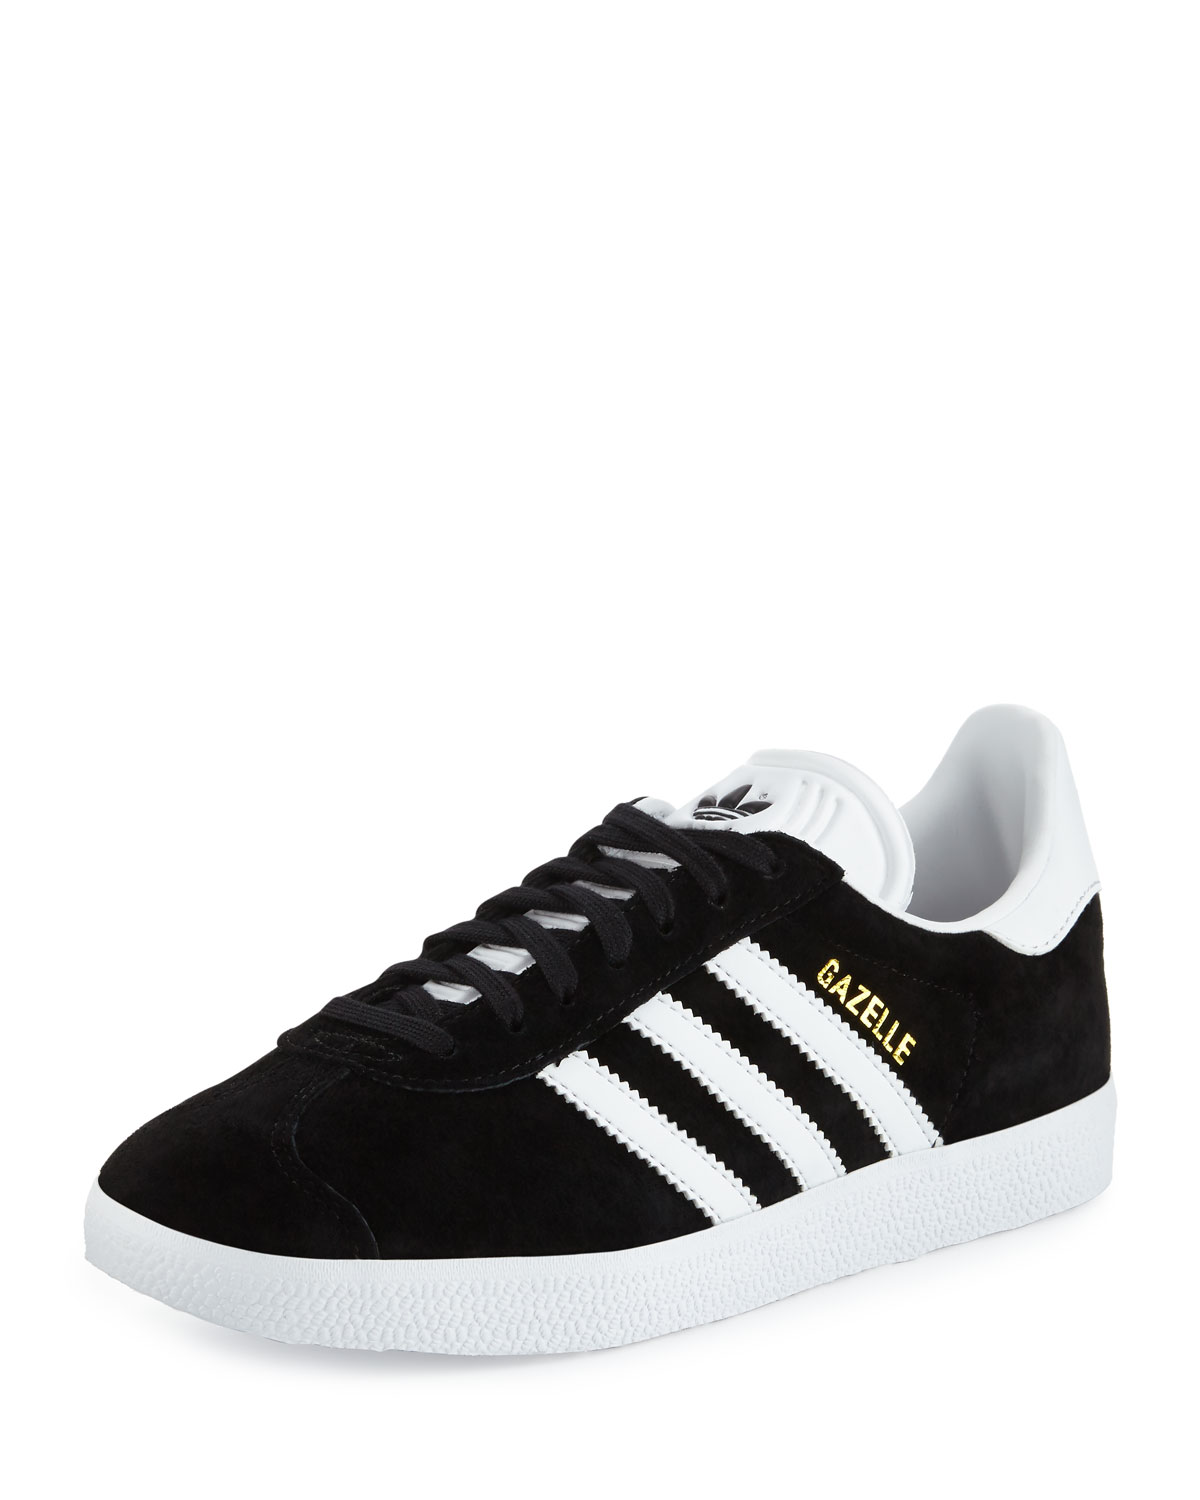 watch af772 ee8f3 AdidasGazelle Original Suede Sneakers, BlackWhite